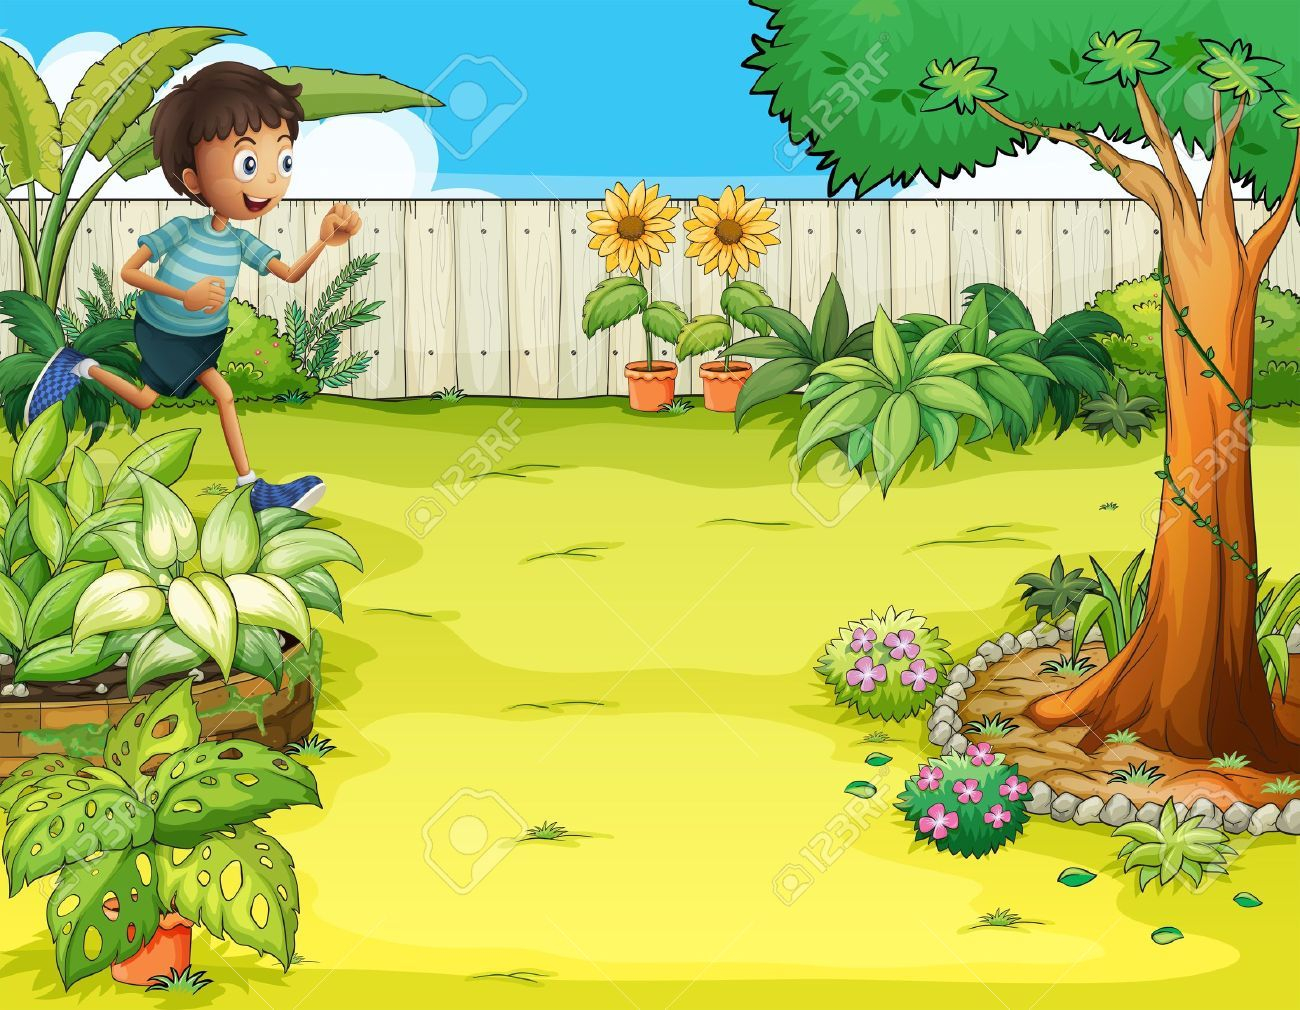 illustration of a boy running at the backyard royalty free cliparts vectors and stock illustration pic 18005070  [ 1300 x 1010 Pixel ]